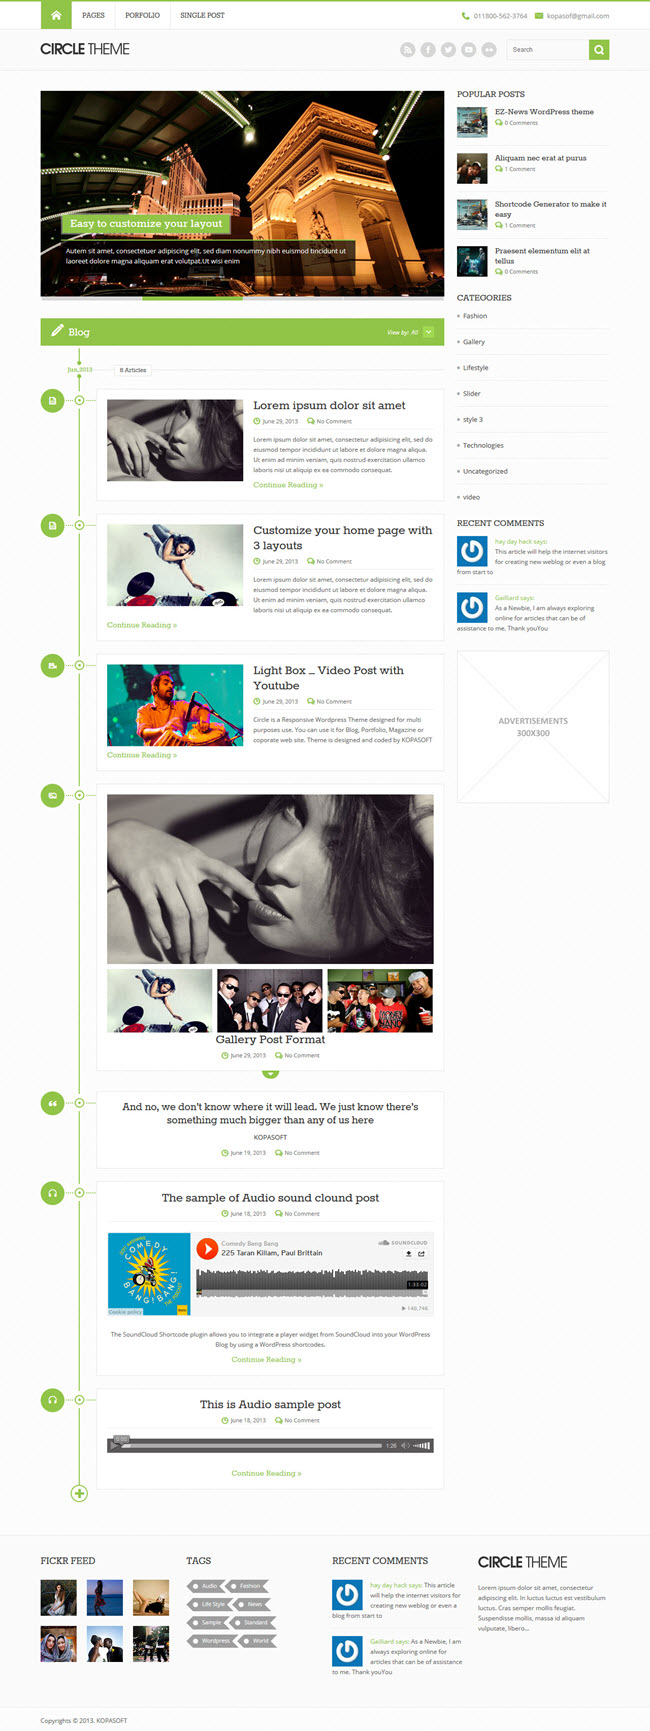 947 10 Best Free WordPress Themes for April 2014